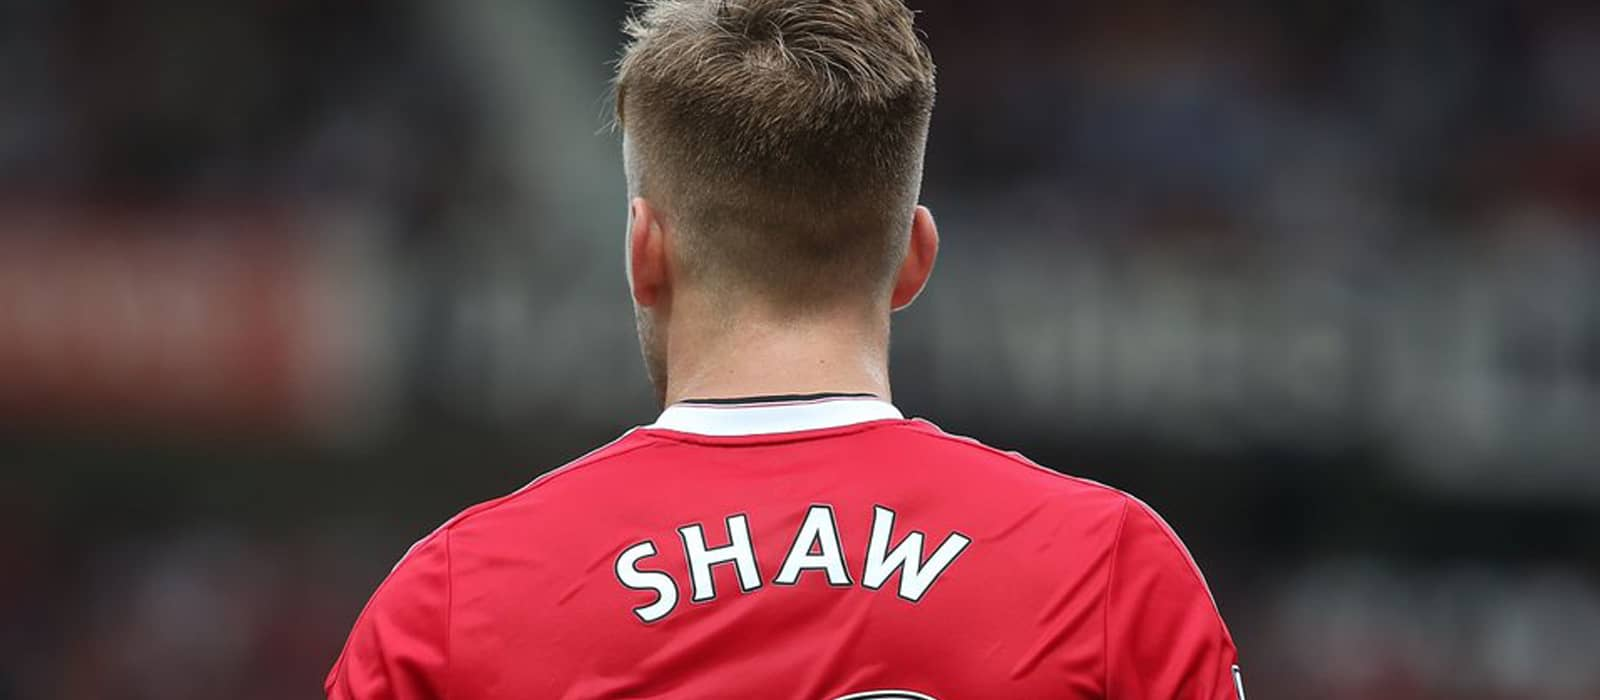 LIVE: Man United news, transfers and gossip – Luke Shaw returns to training